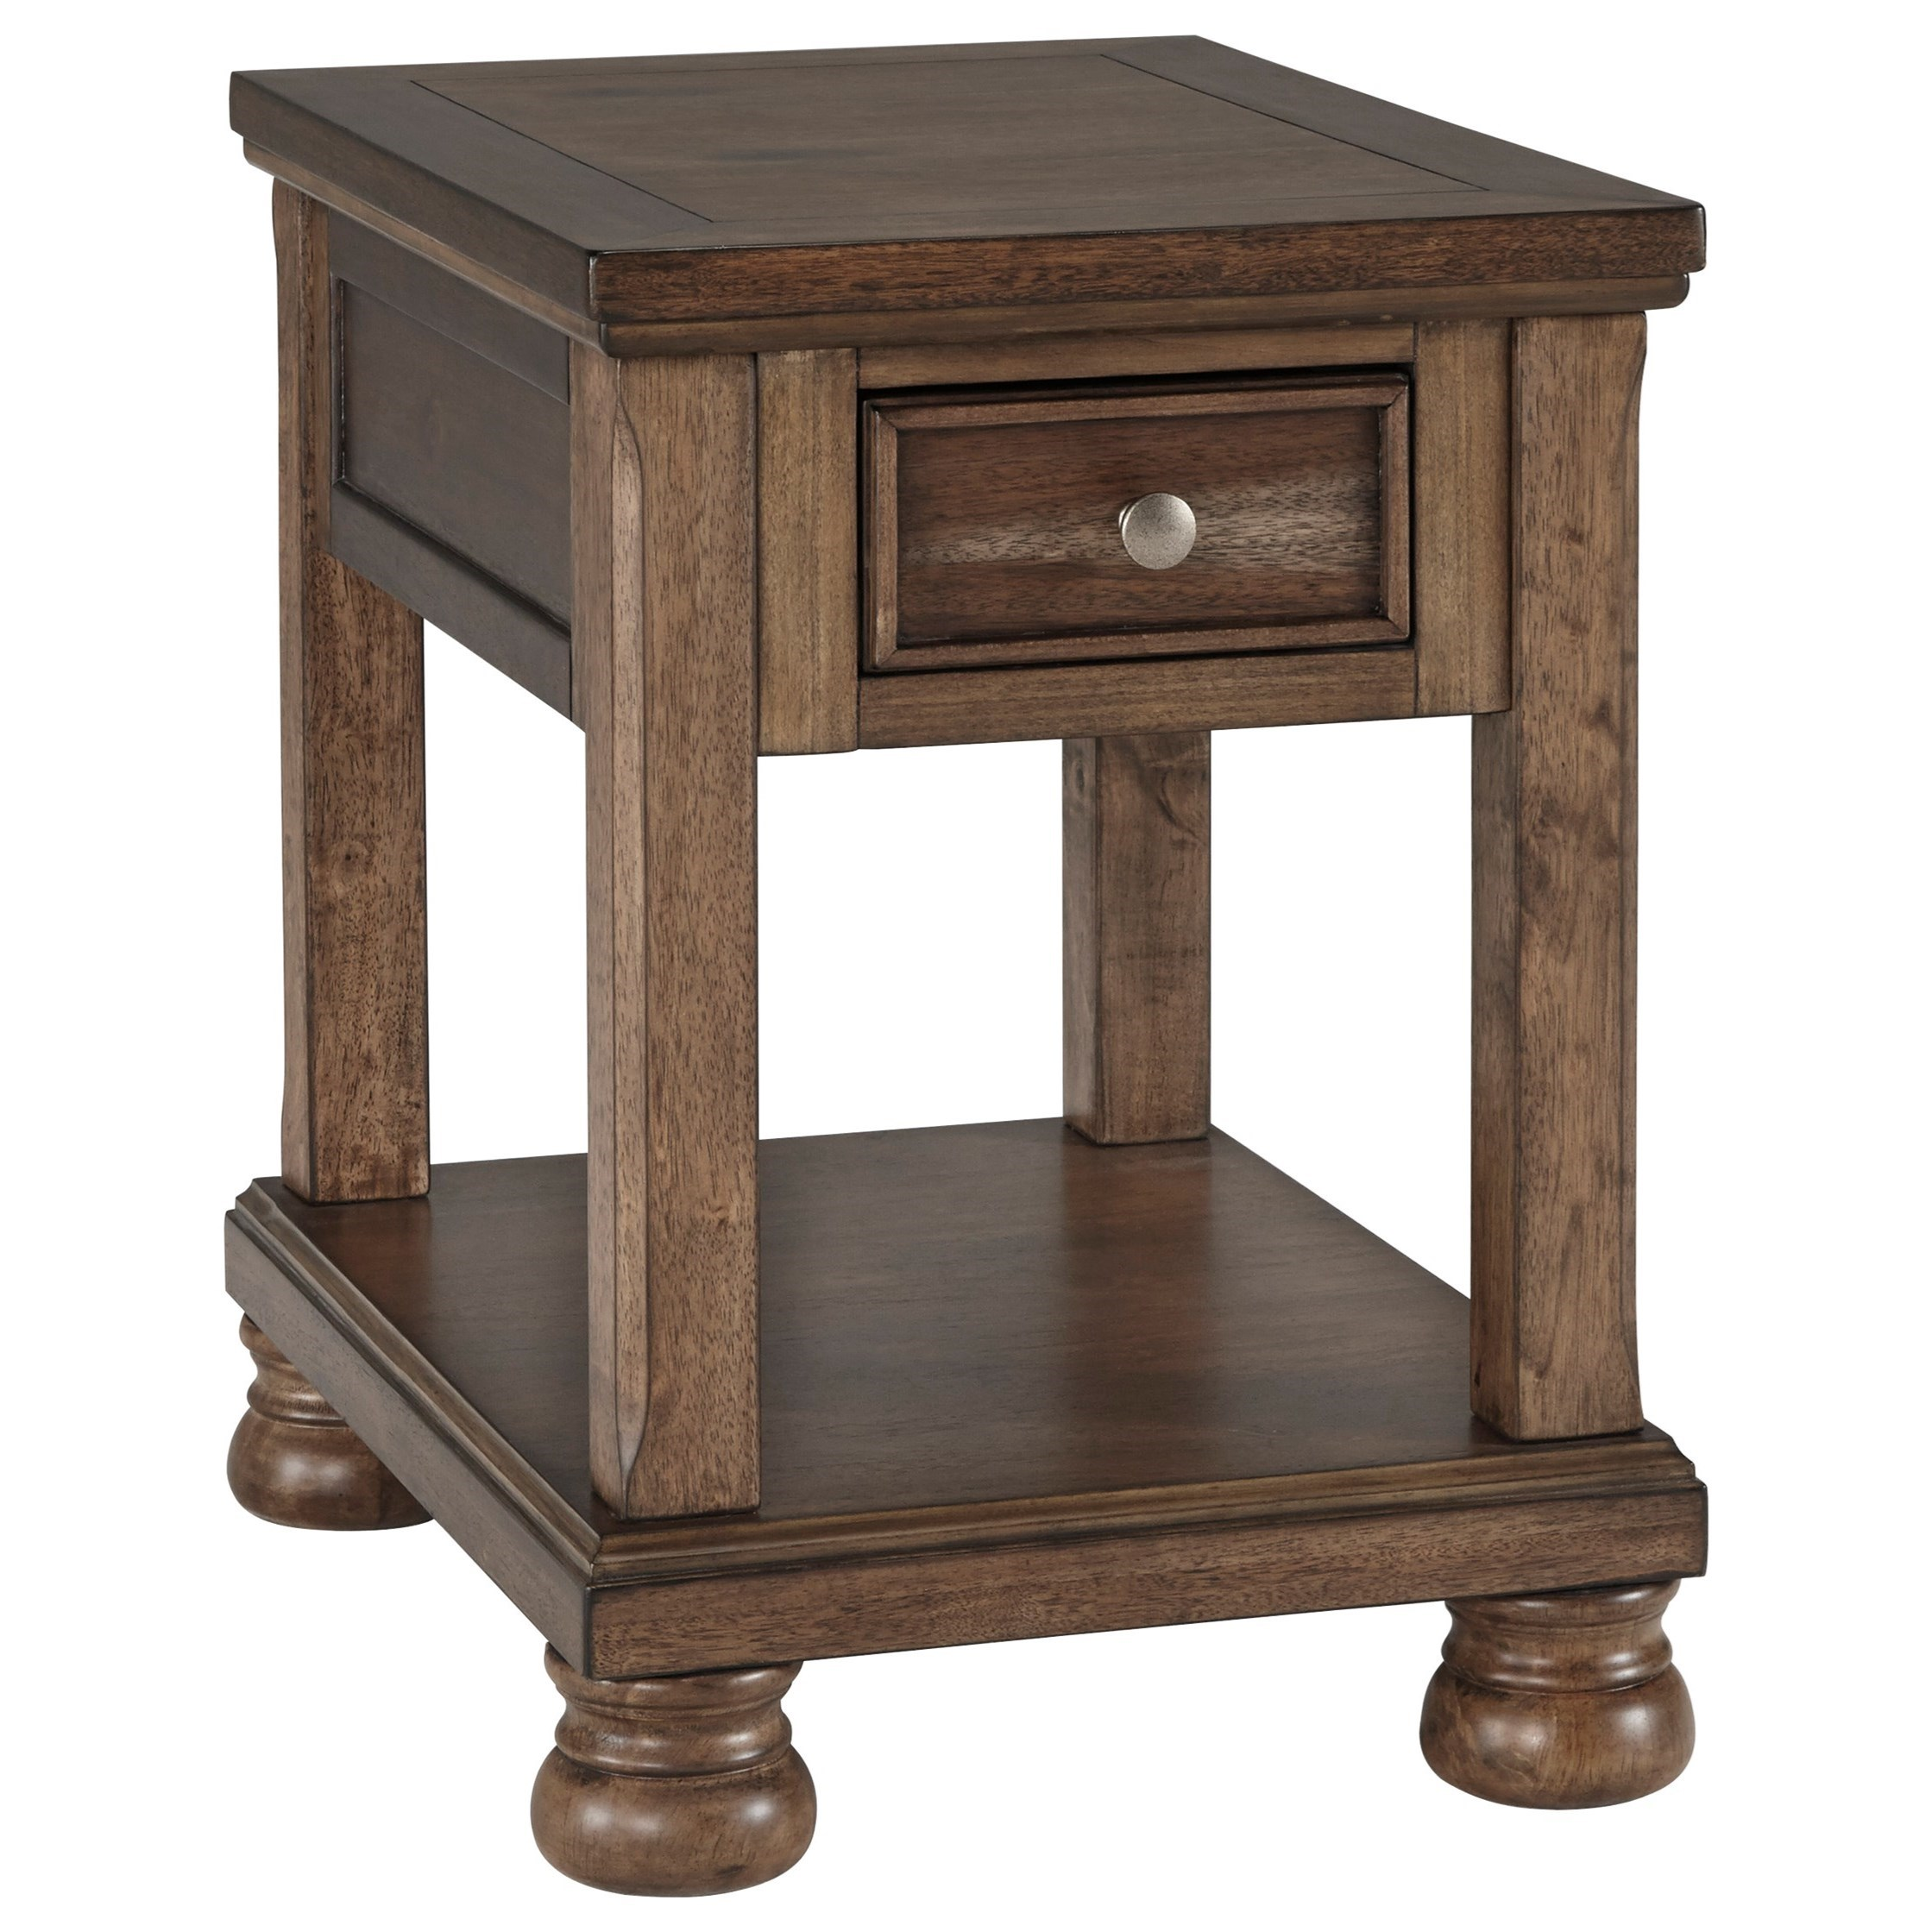 ashley end tables laura signature design flynnter transitional tamonie square table custom made glass dining ethan allen court dresser nursery side espresso outdoor furniture home